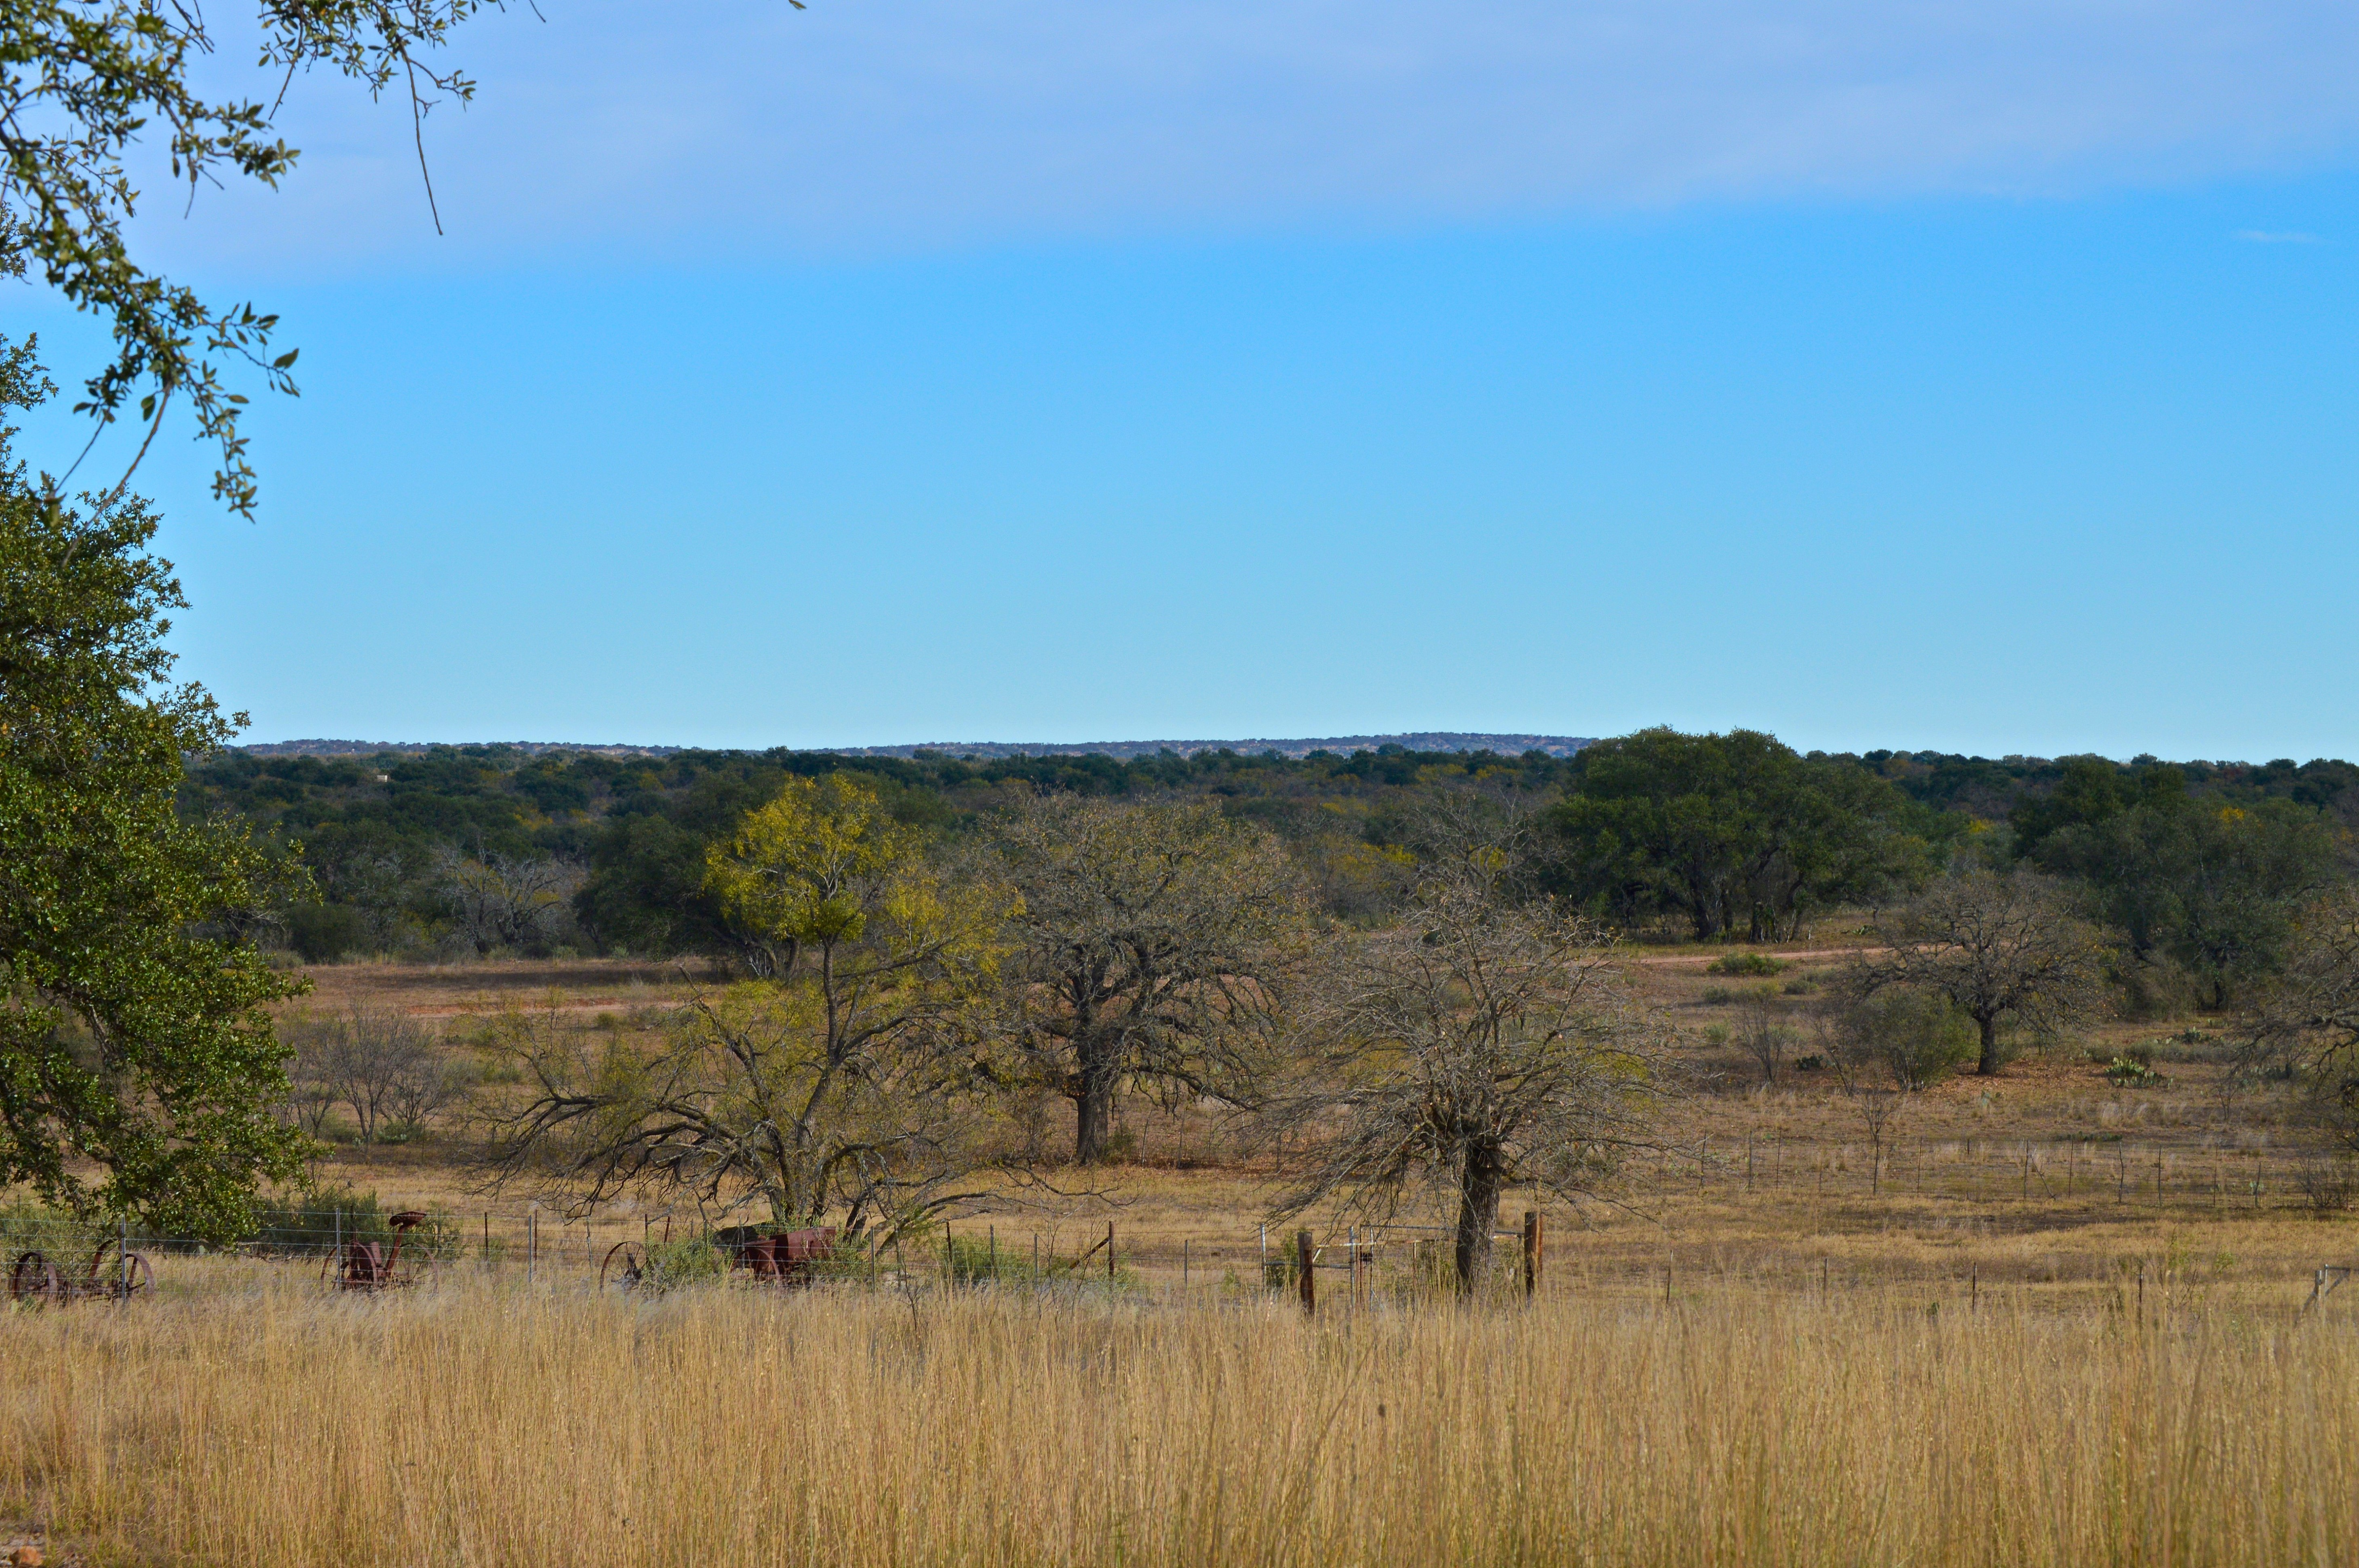 Home for sale: 5205 County Road 106, Llano, Tx